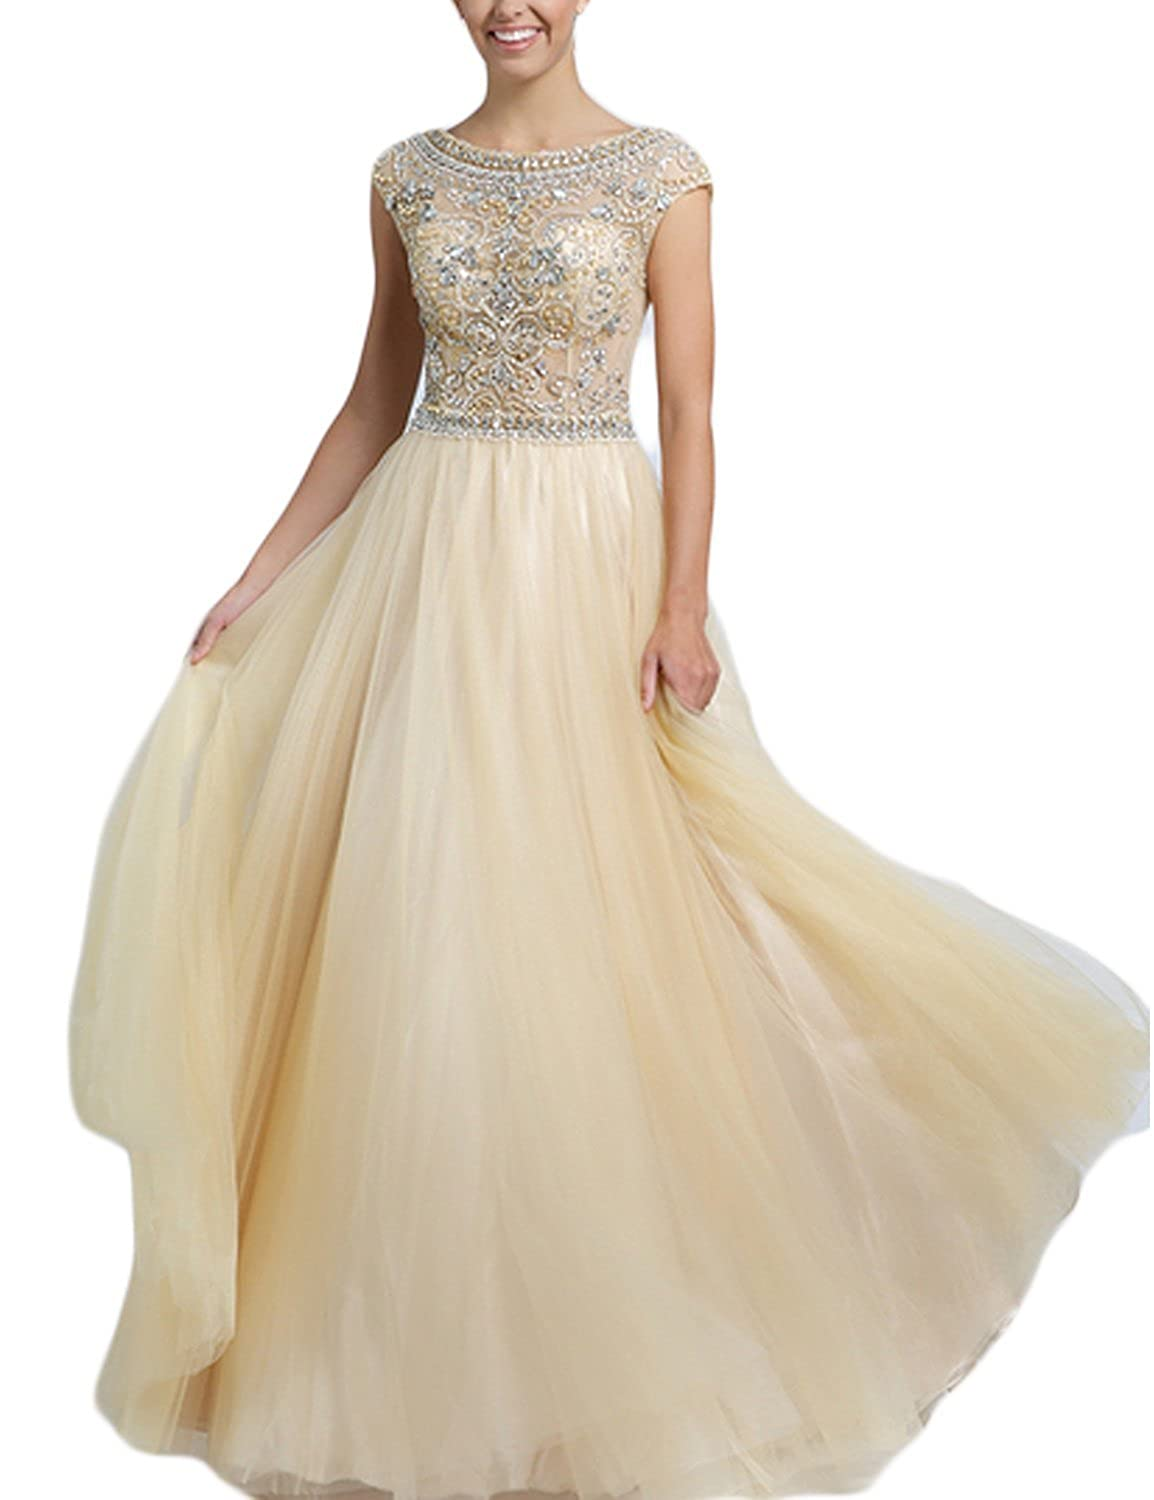 Fanciest Women's Cap Sleeve Beaded Long Evening Dresses Formal Prom Gowns Champagne